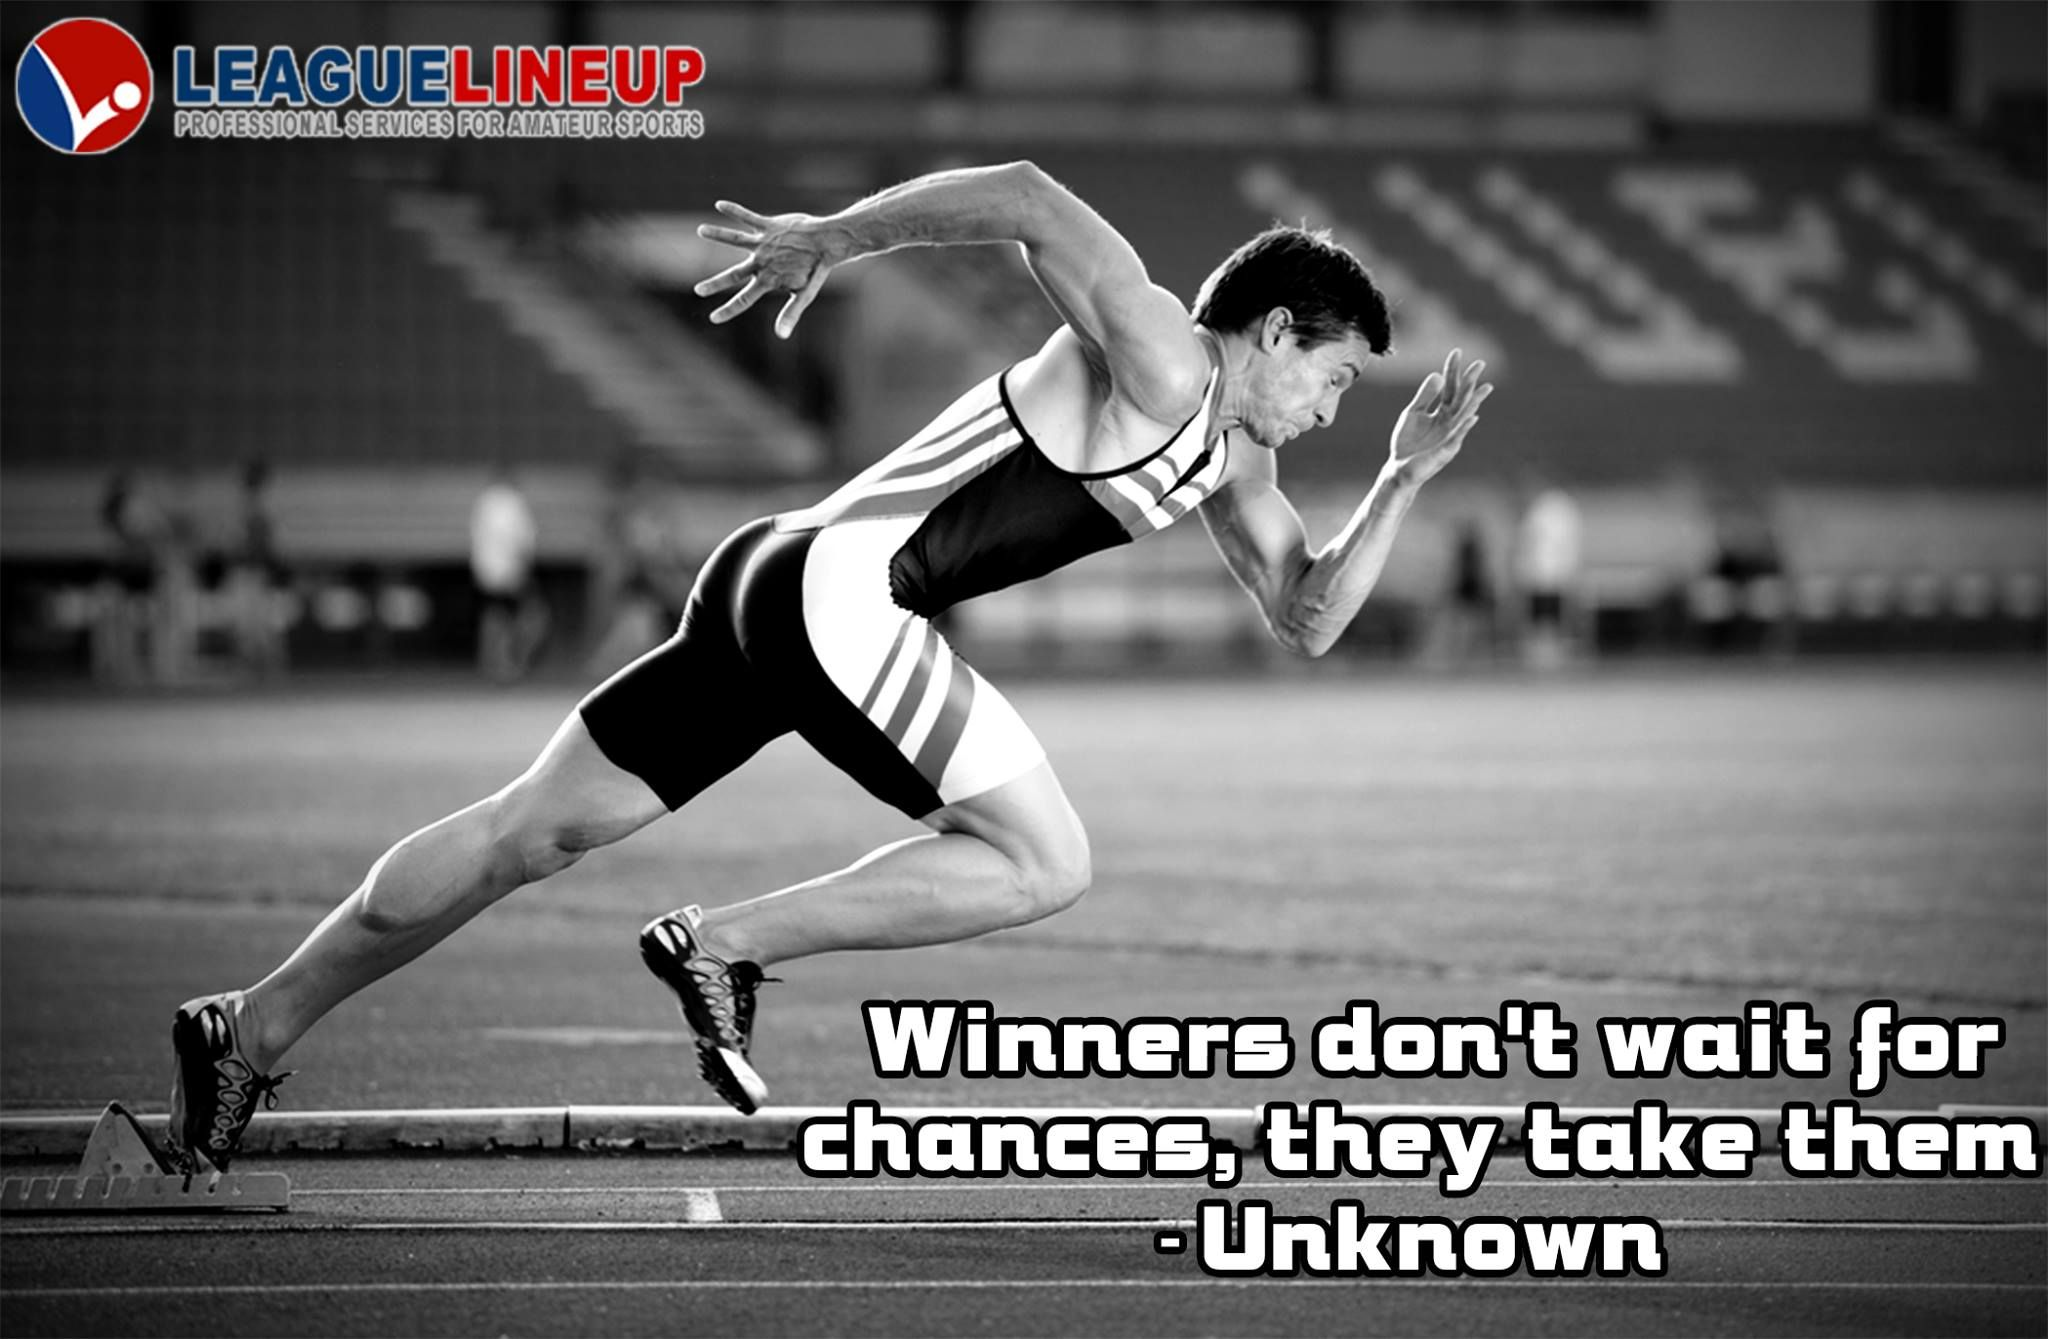 Winners don t wait chances they take them Unknown